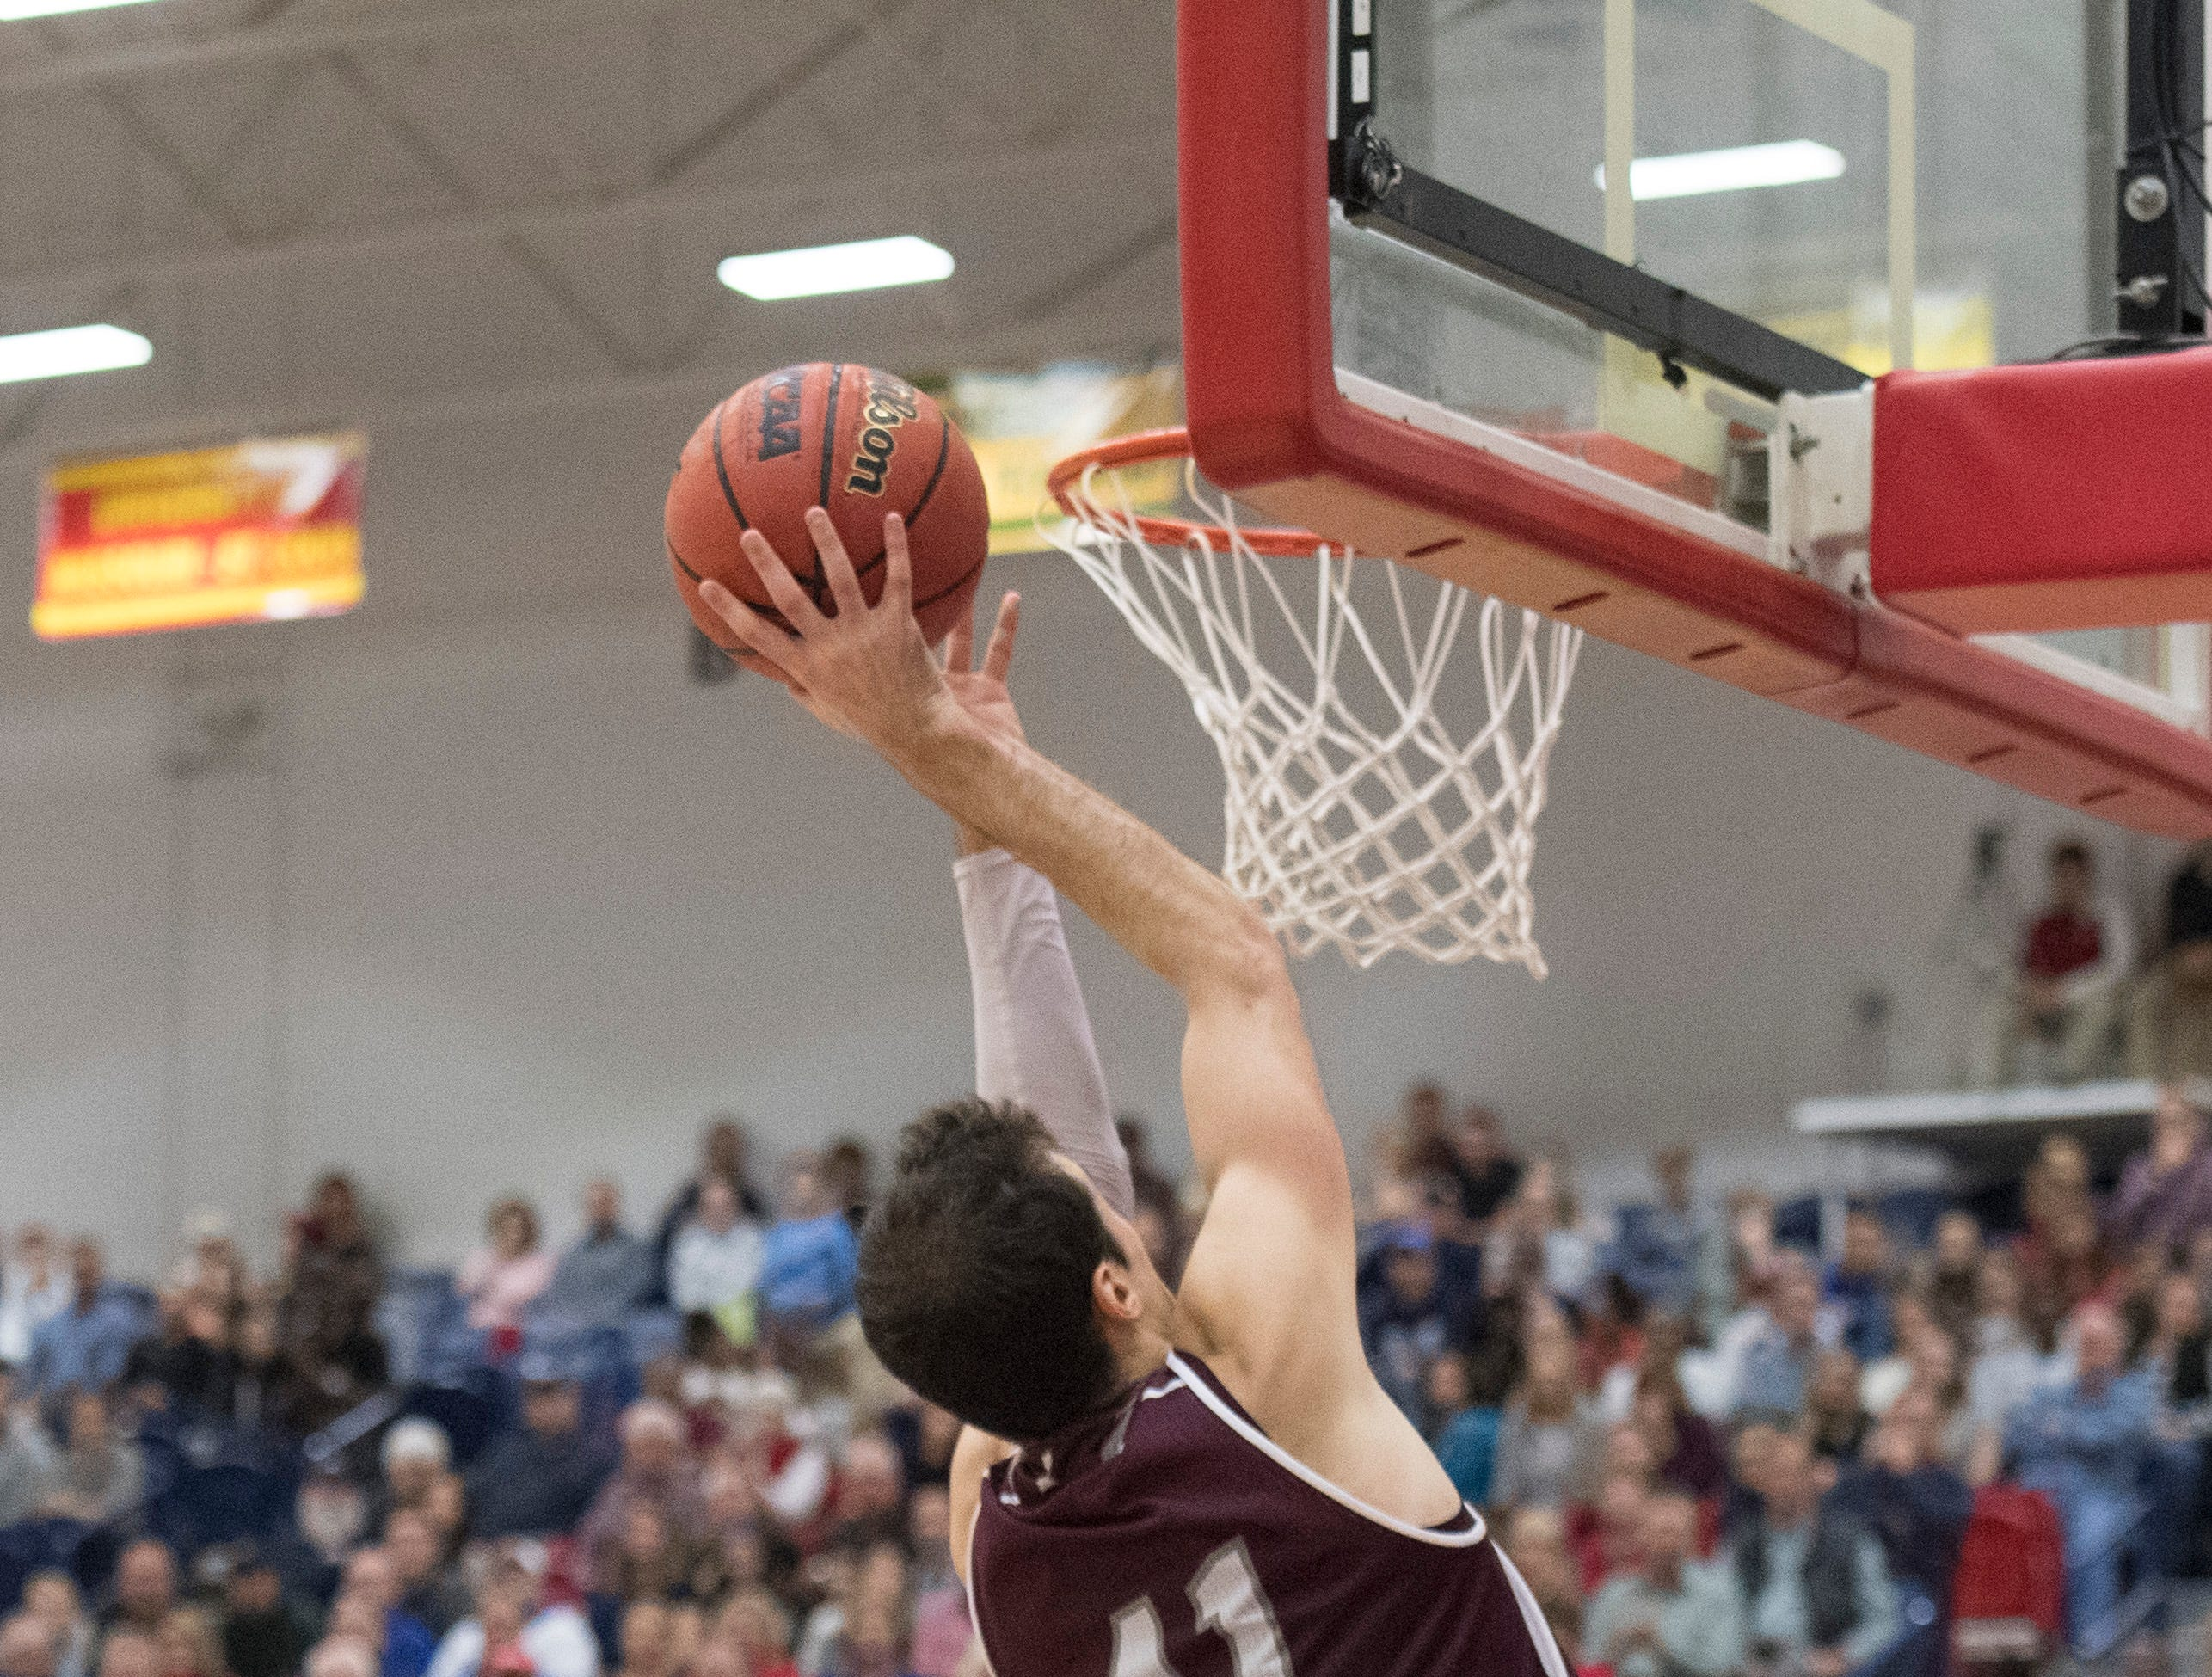 Bellarmine's Adam Eberhard (41) reaches for the basket during the USI vs Bellarmine game at the PAC Saturday, Dec. 1, 2018.